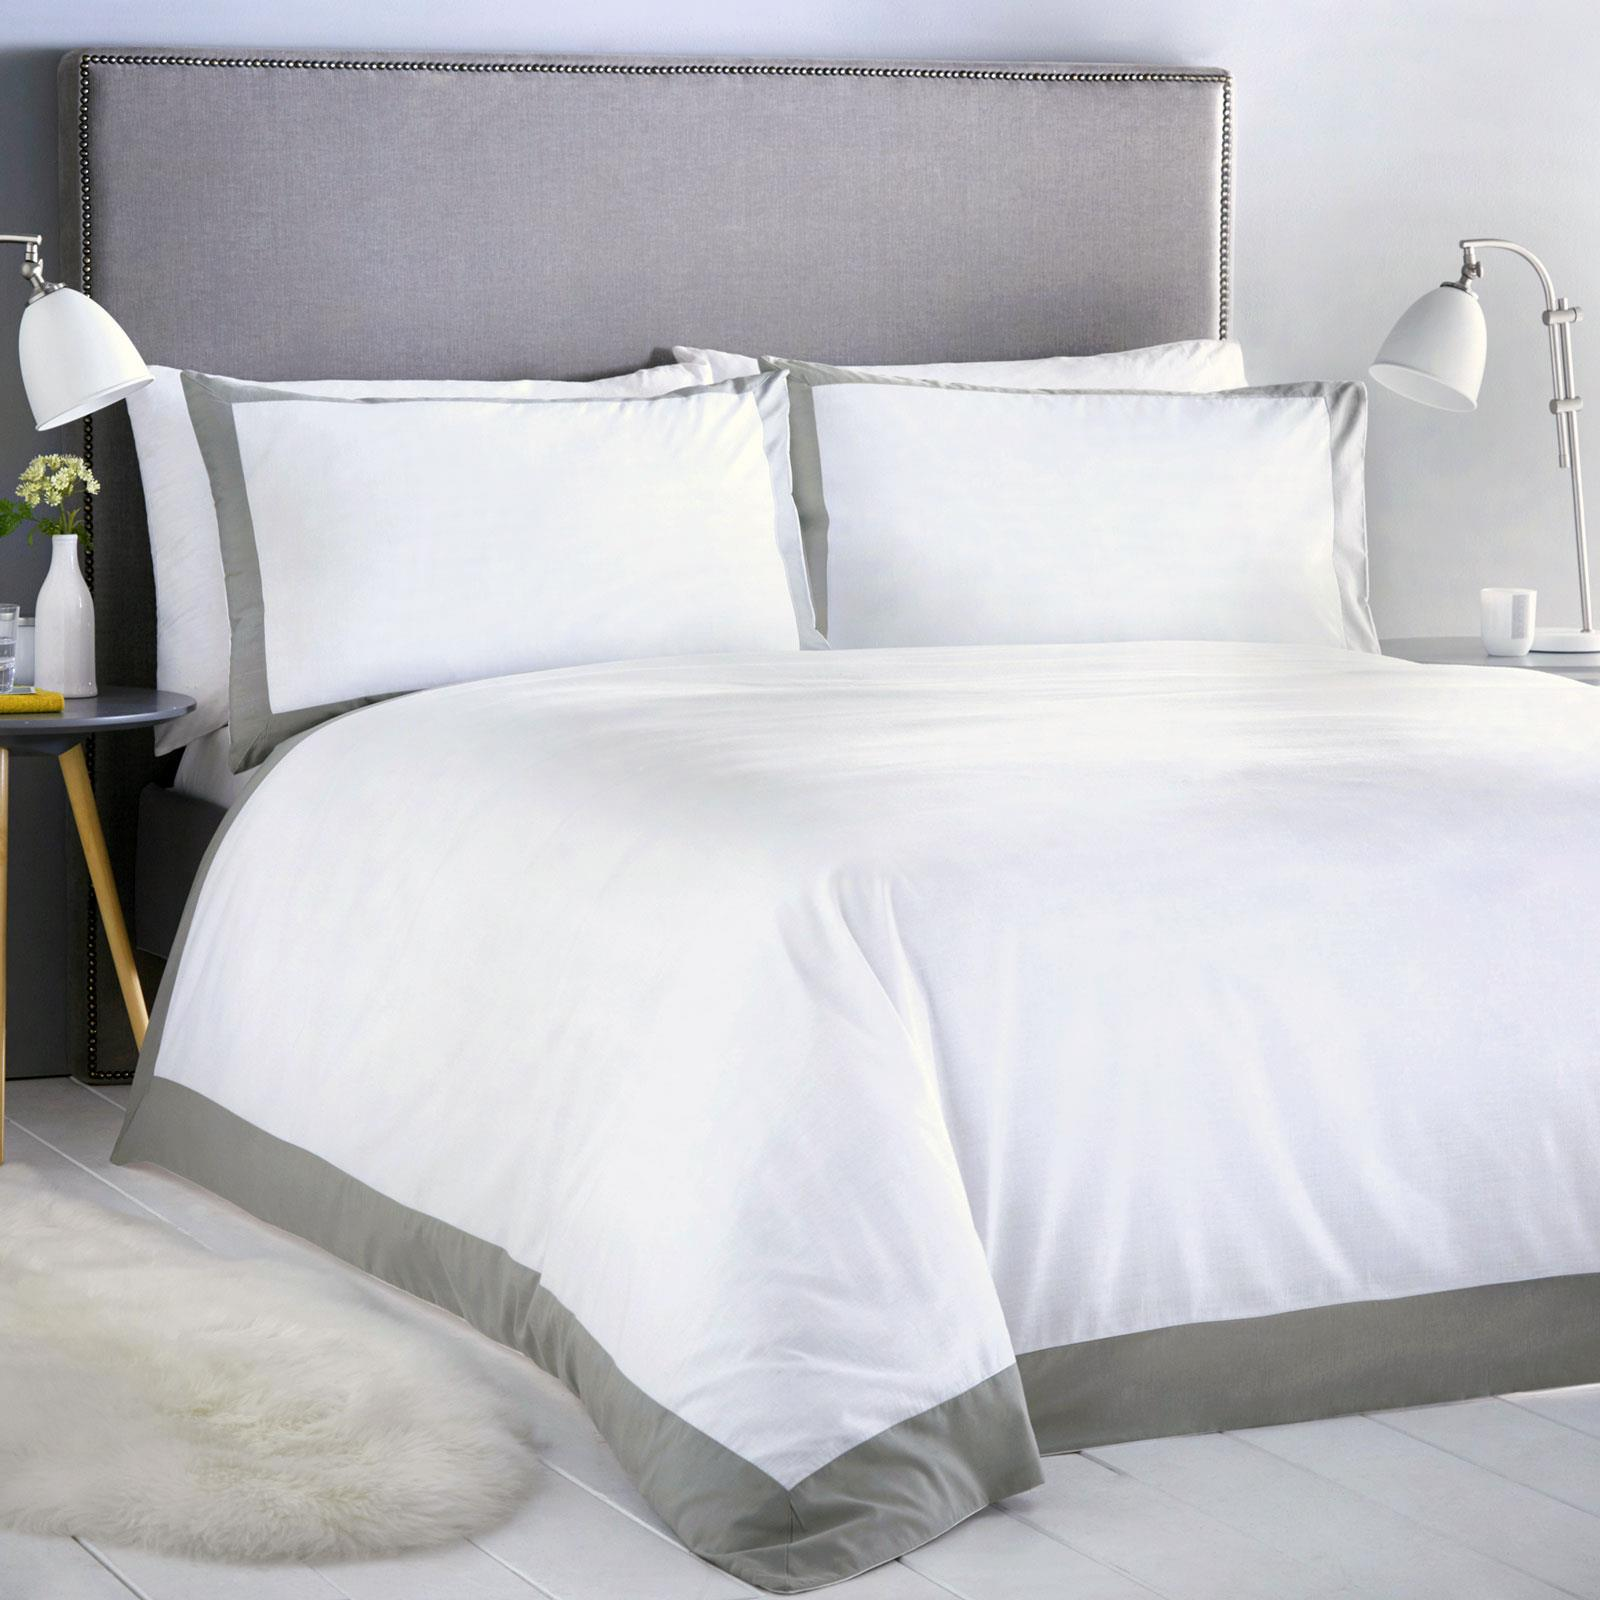 White Duvet Covers Grey Plain Dyed Bordered Hotel Style Quilt